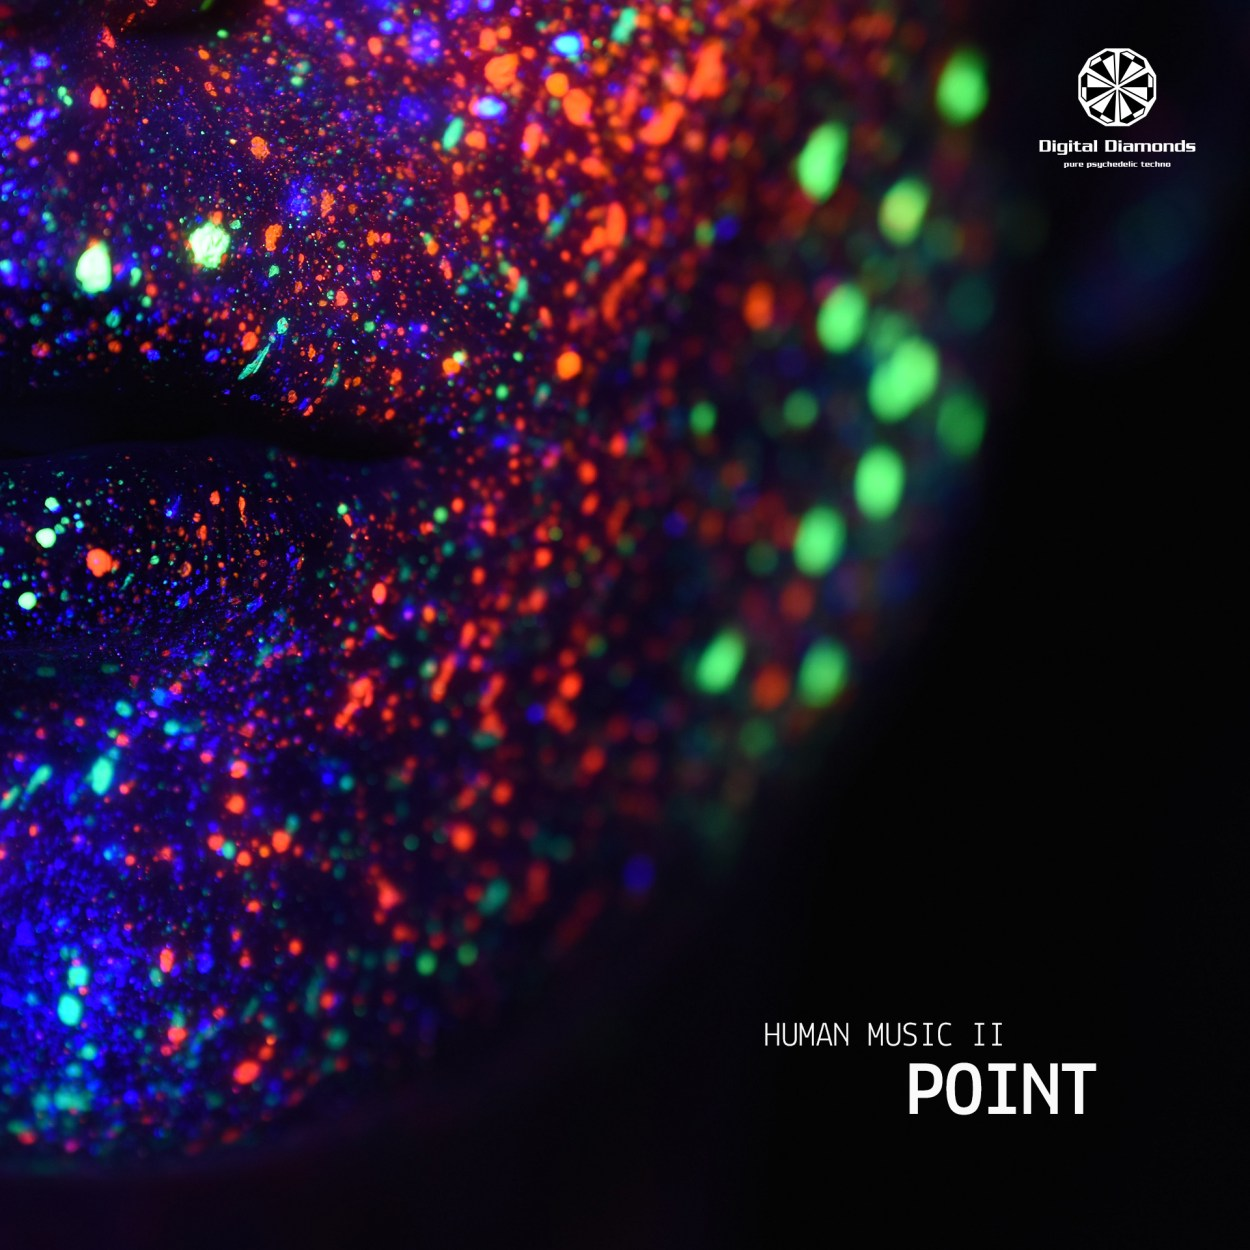 Point – Human Music II